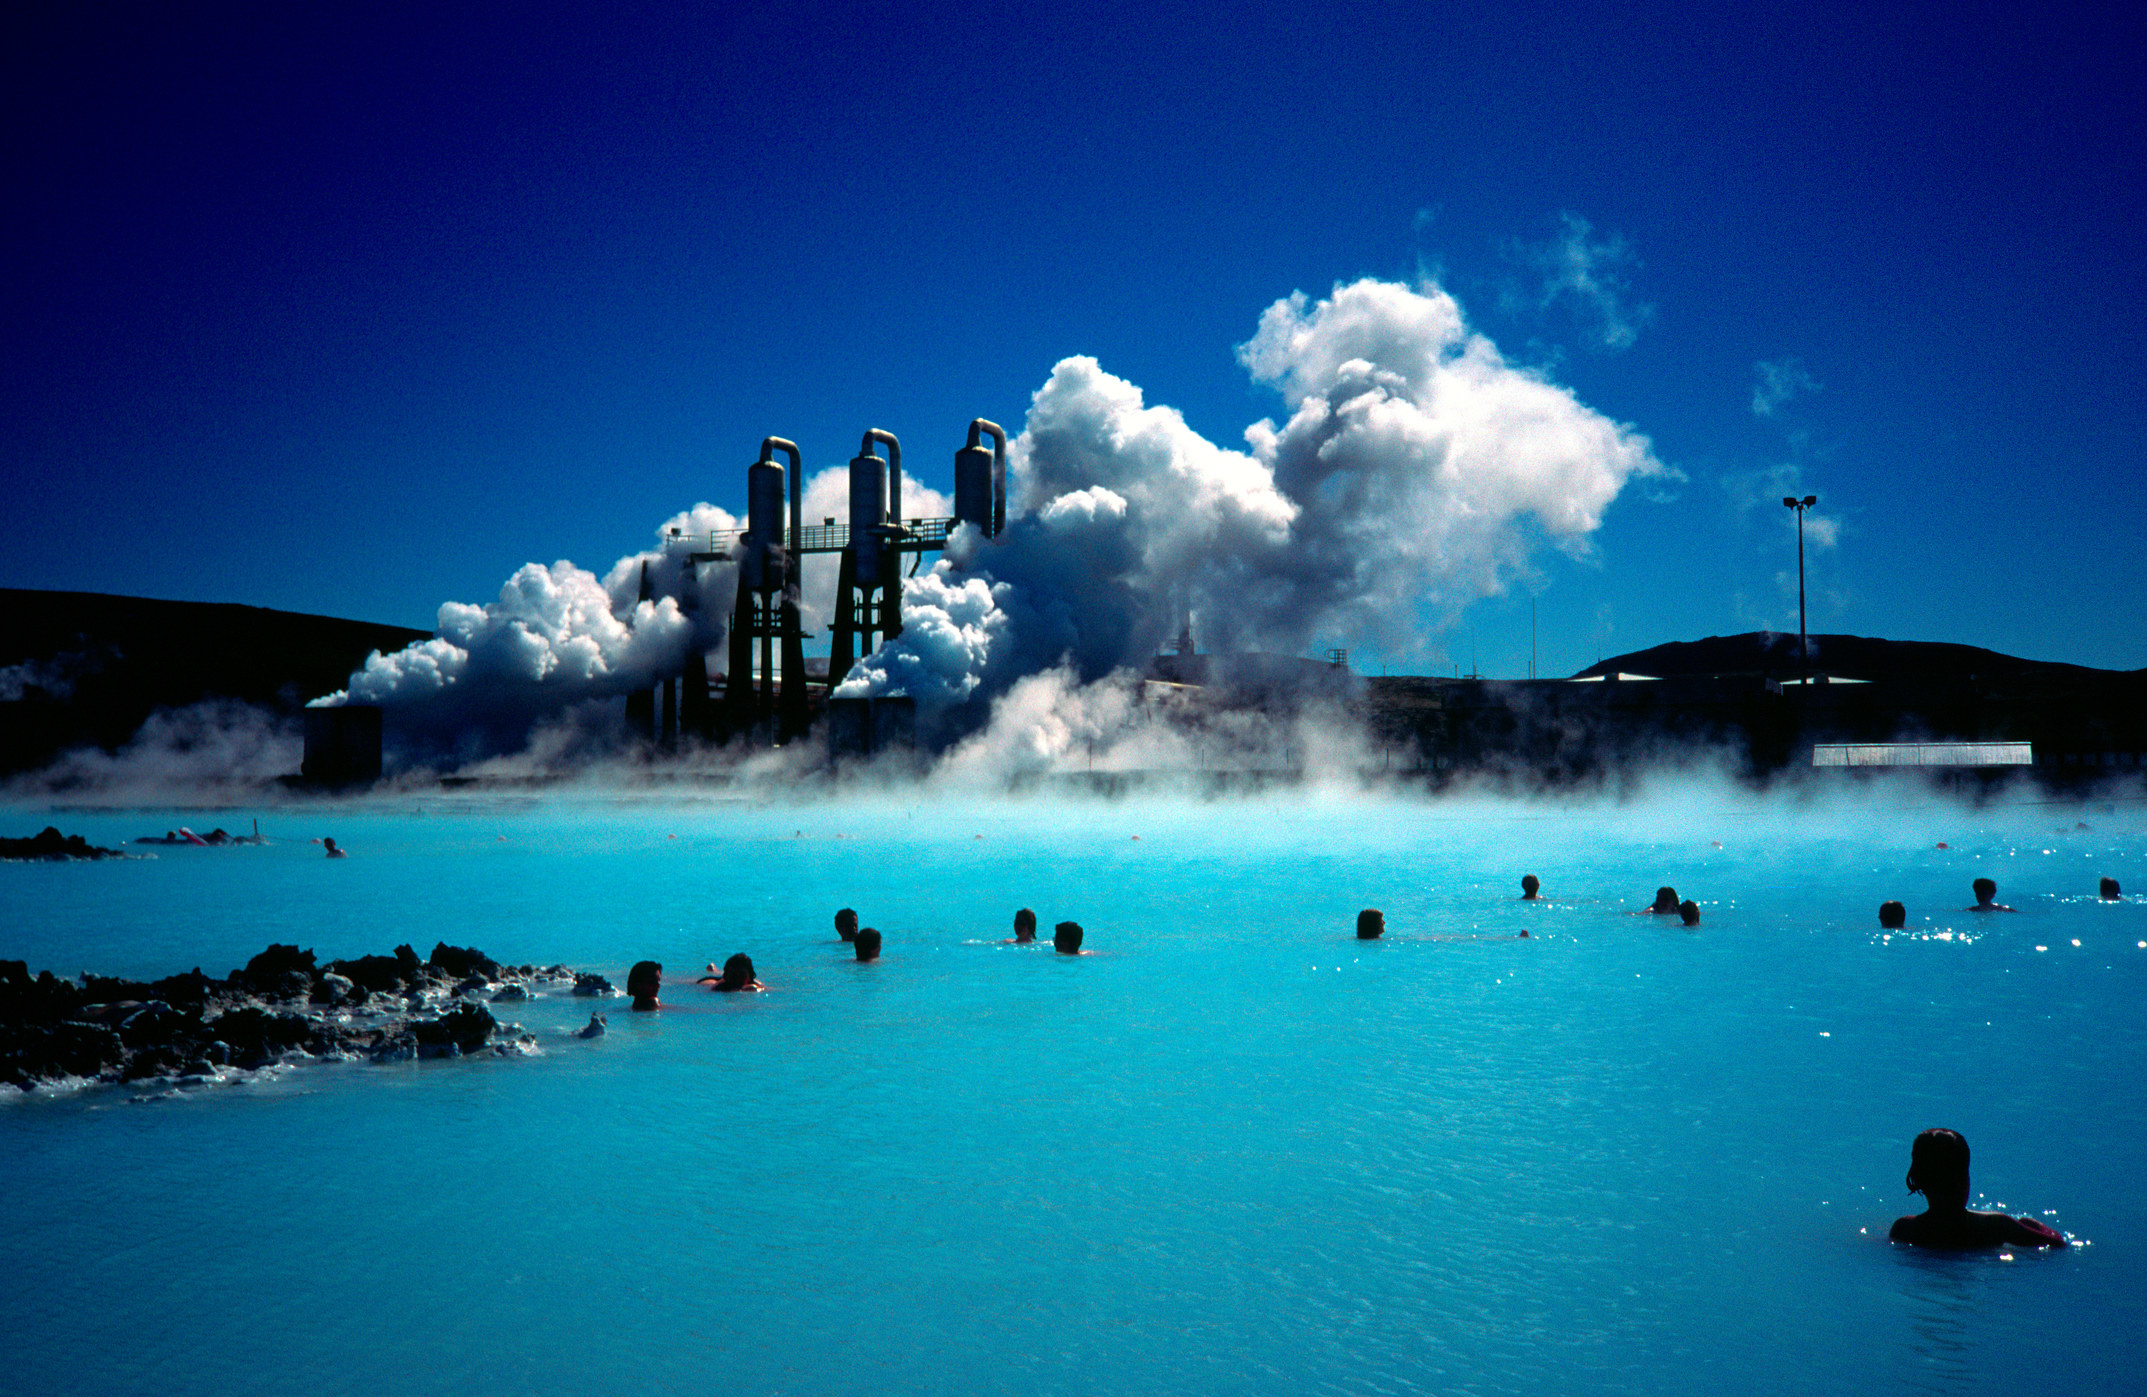 People in the Blue Lagoon in Iceland